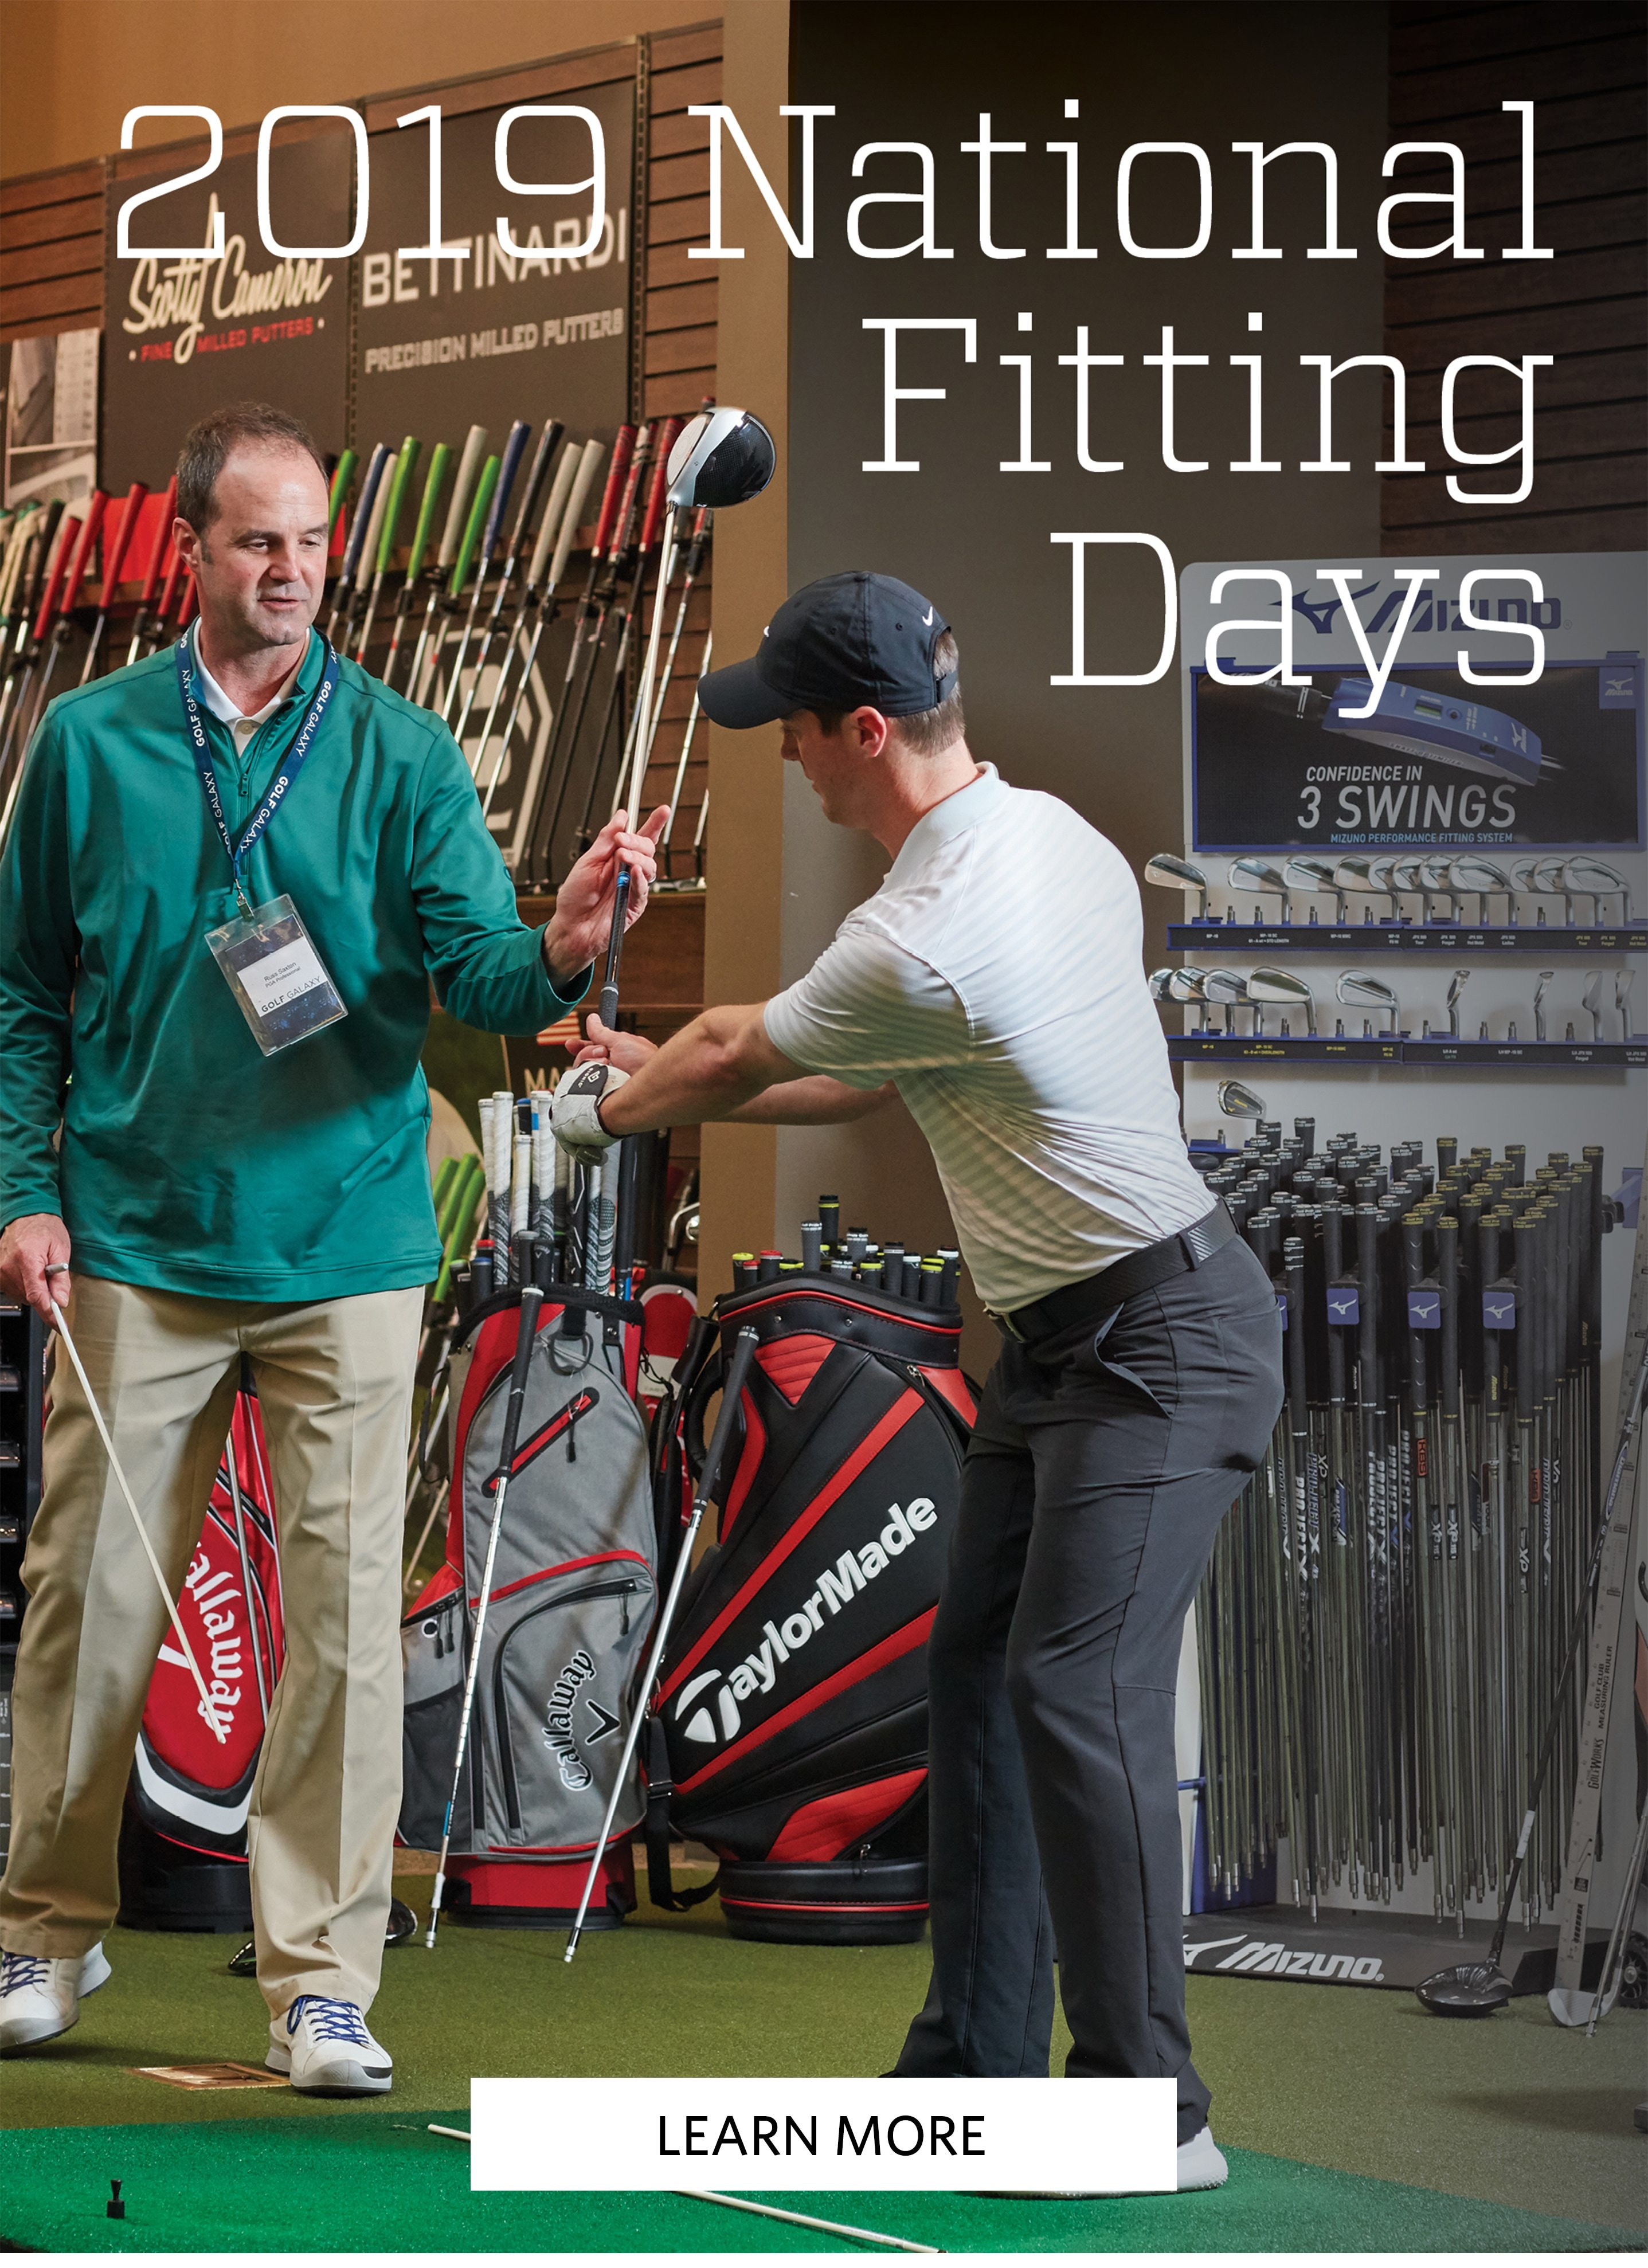 2019 National Fitting Days | LEARN MORE